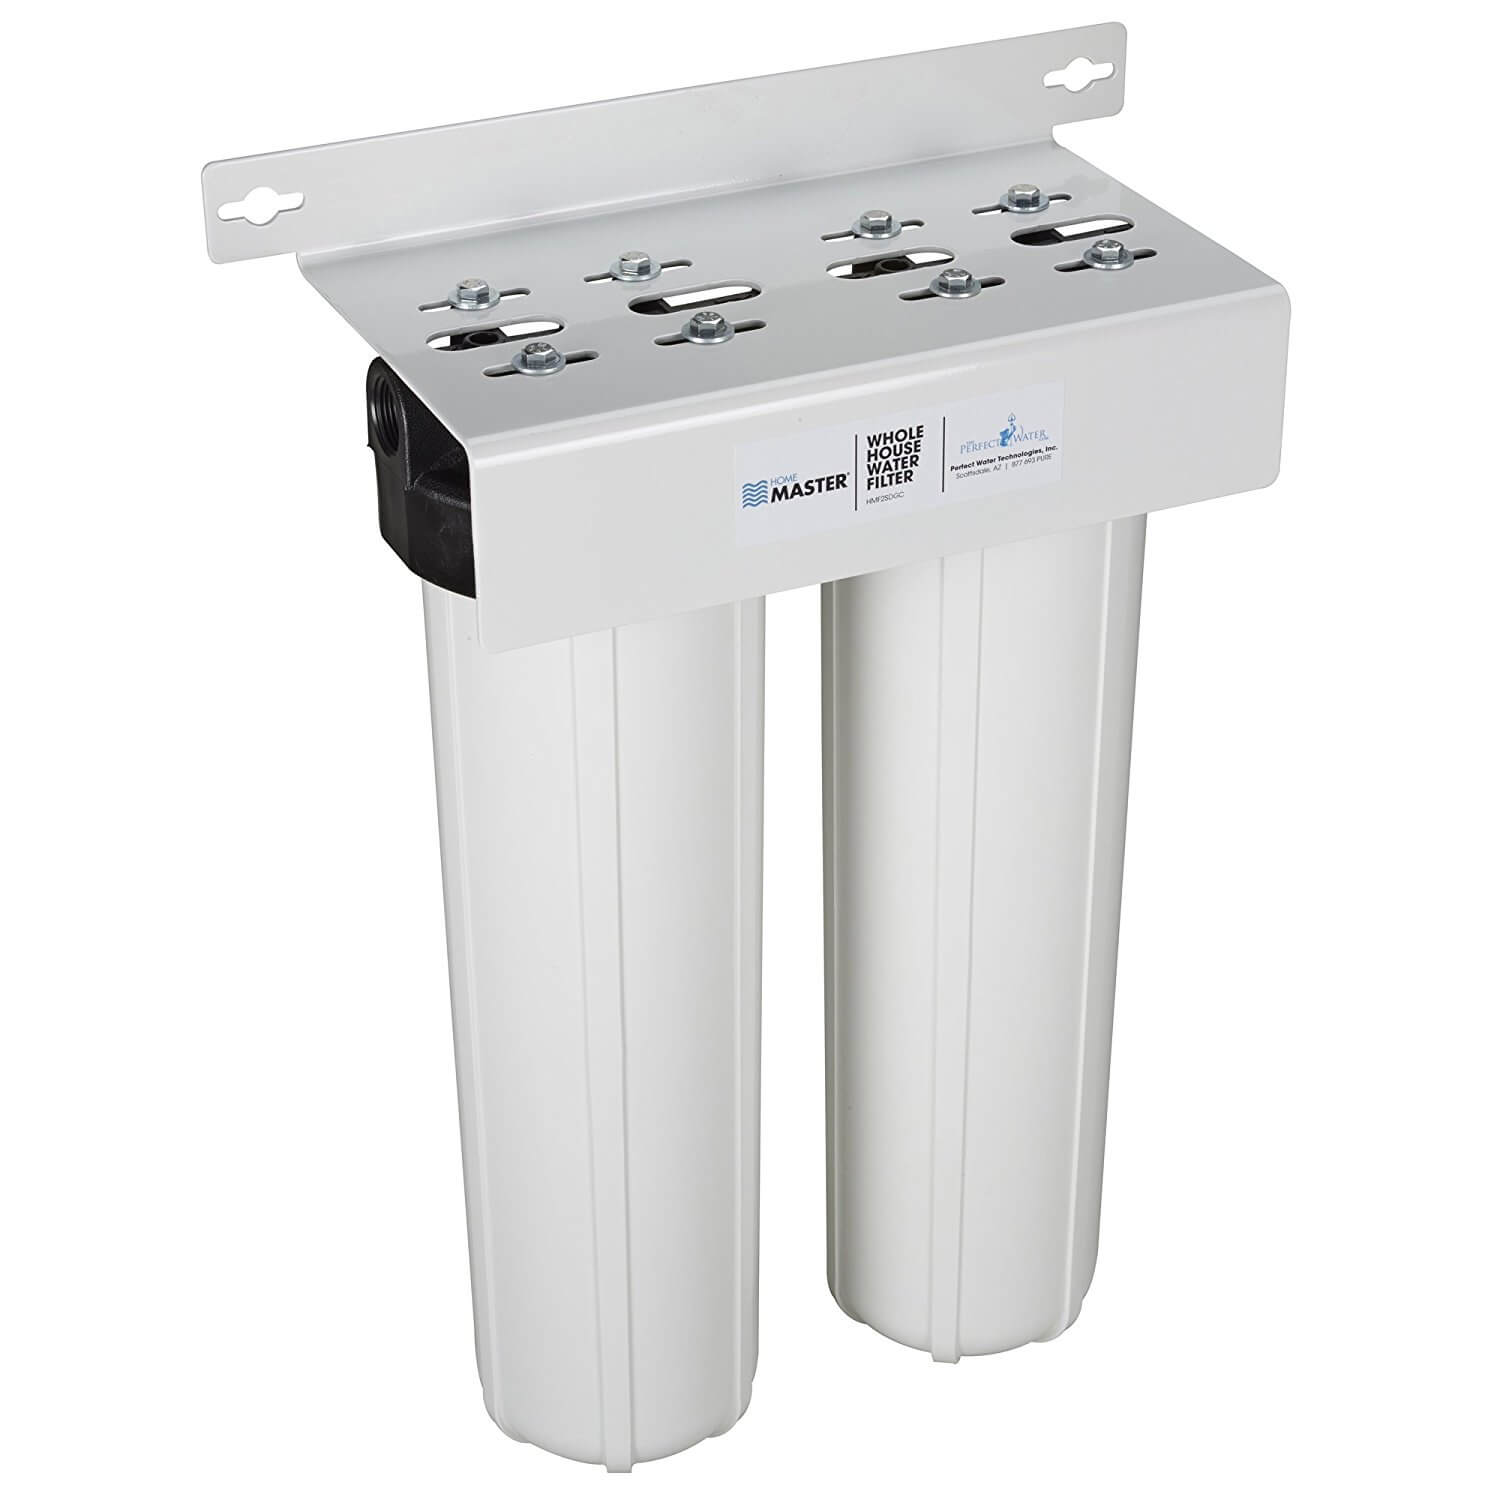 whirlpool whole house water filter. Linked Whole Home Water Filtration Systems Whirlpool Aquatic Filter Culligan House D